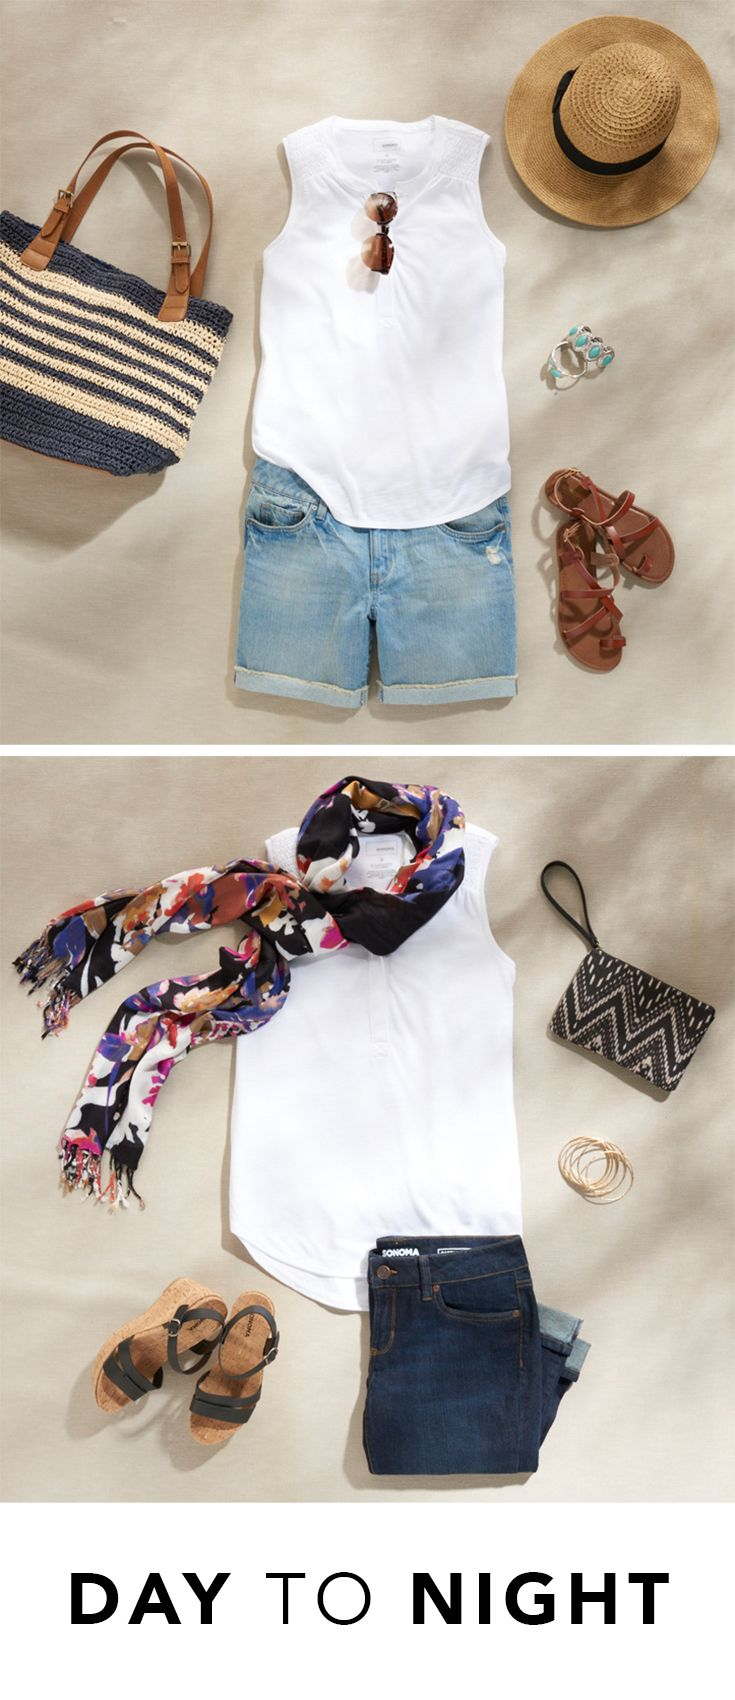 Two ways to wear the perfect white tank top. Hint: pairing with denim is a no-brainer. Featured product: SONOMA Goods for Life smocked henley tank, woven bucket tote, deconstructed boyfriend jean shorts, straw Panama hat, gladiator sandals, cuffed denim capris, printed wristlet, wedge sandals and Apt. 9 floral scarf. Find your summer style at Kohl's.